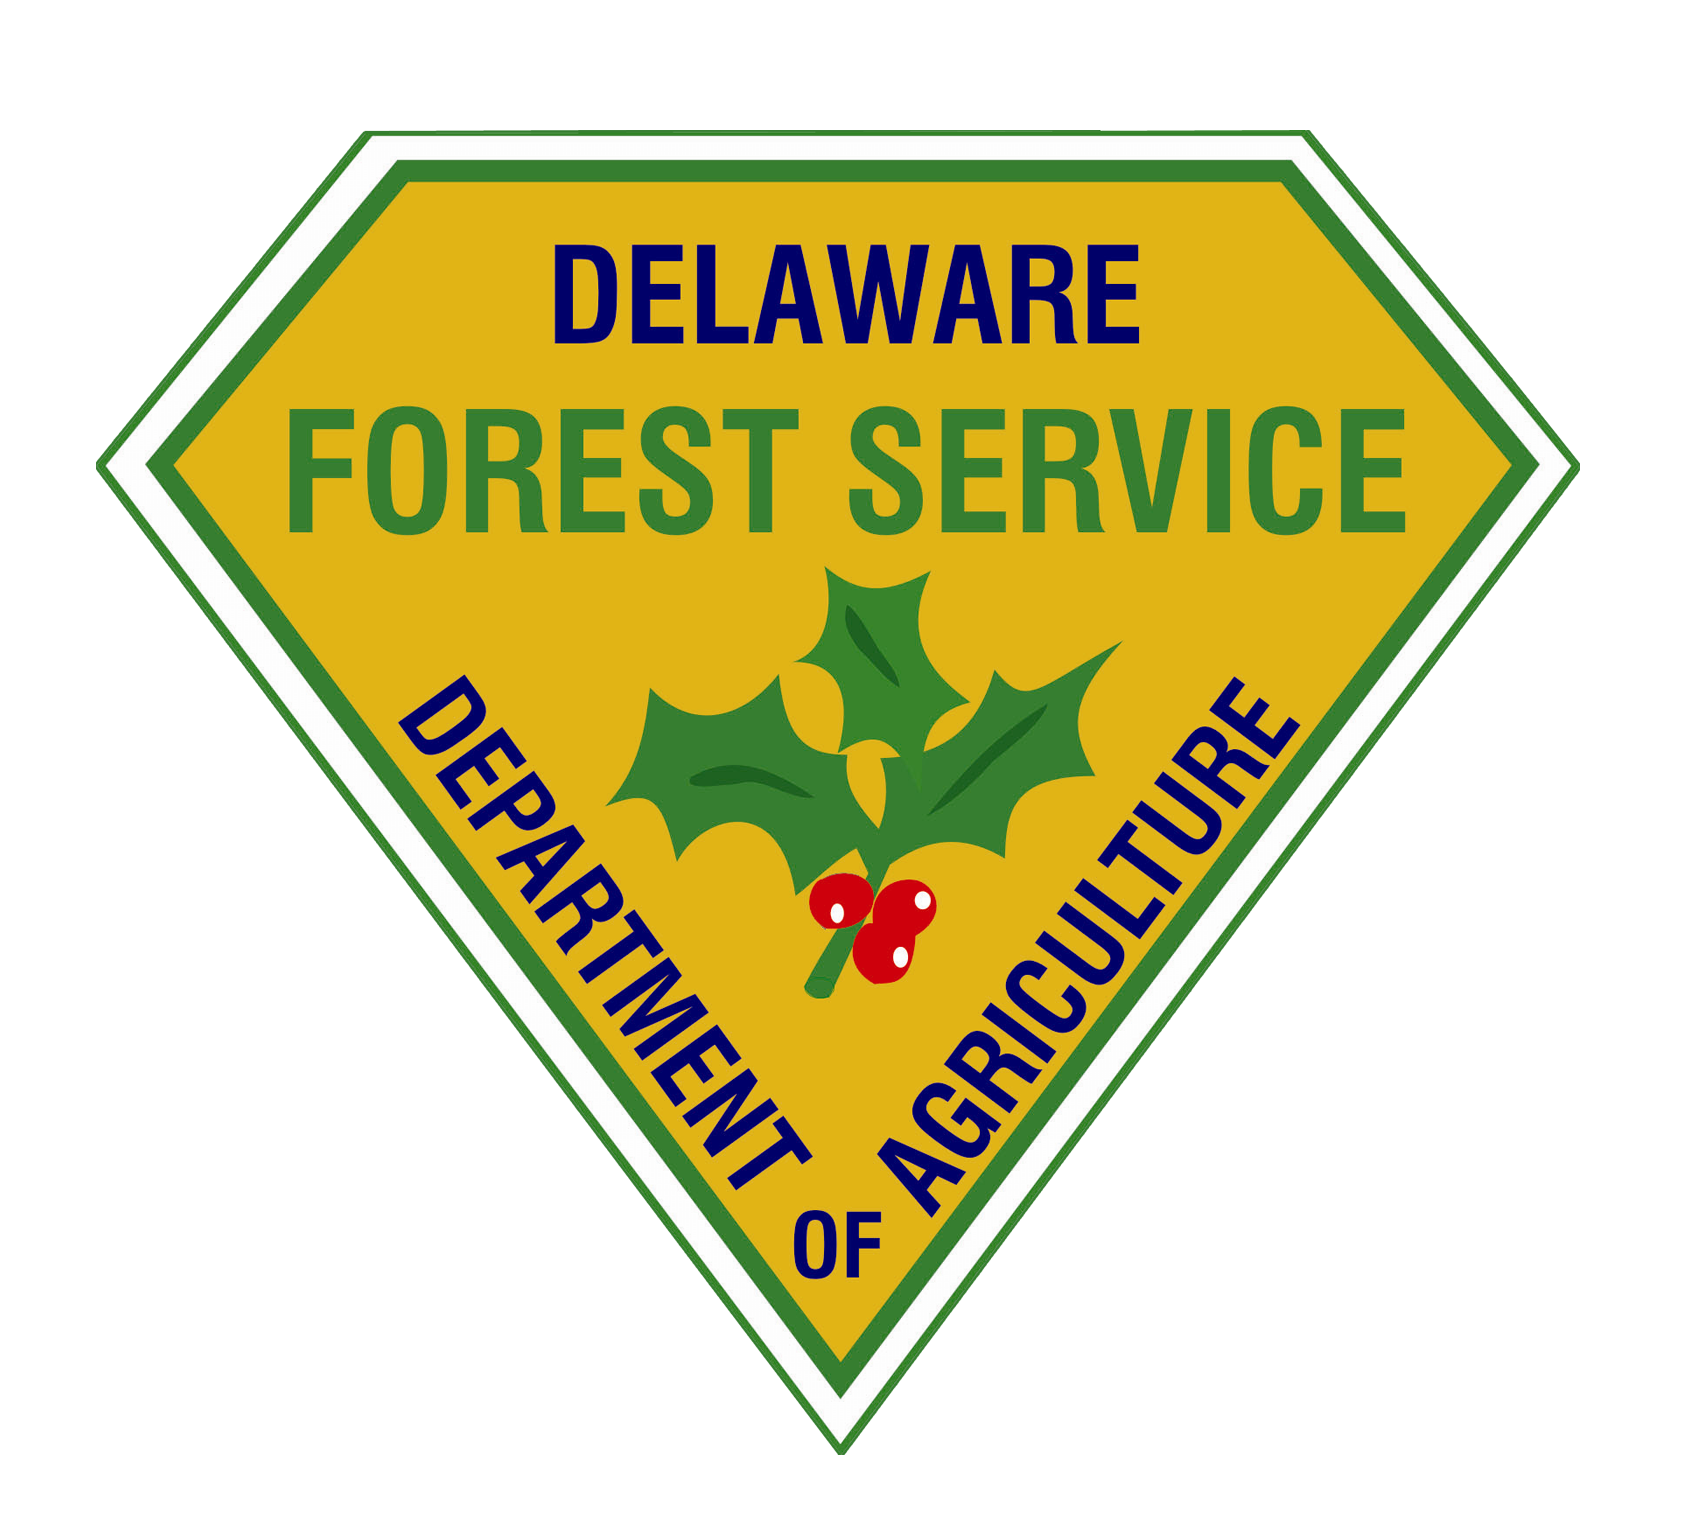 Picture of the Delaware Forest Service